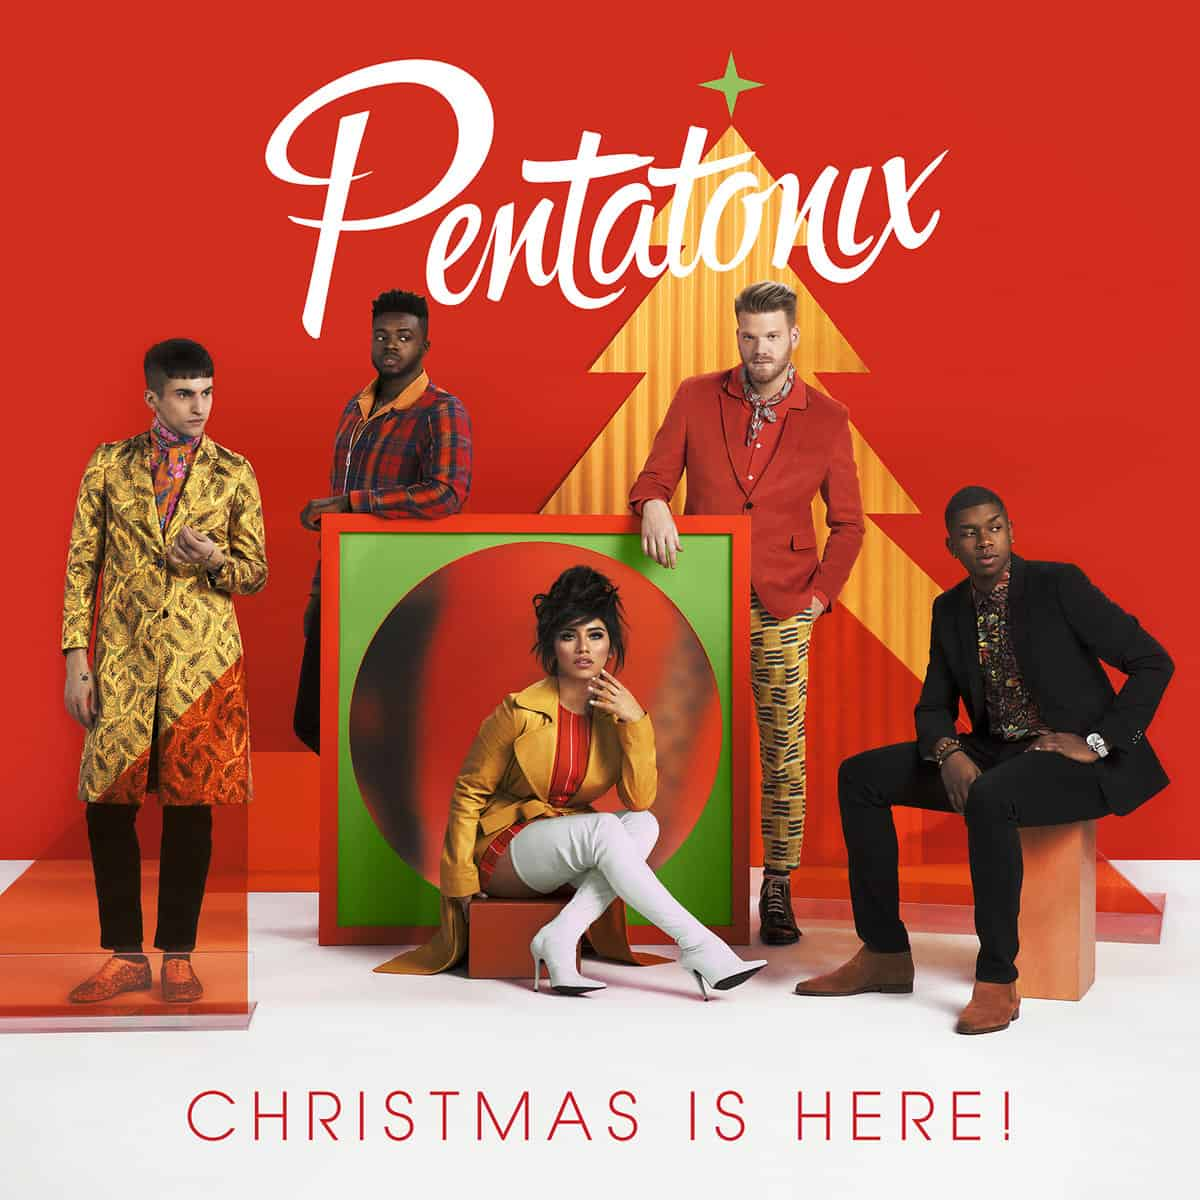 Pentatonix-Christmas Is Here!